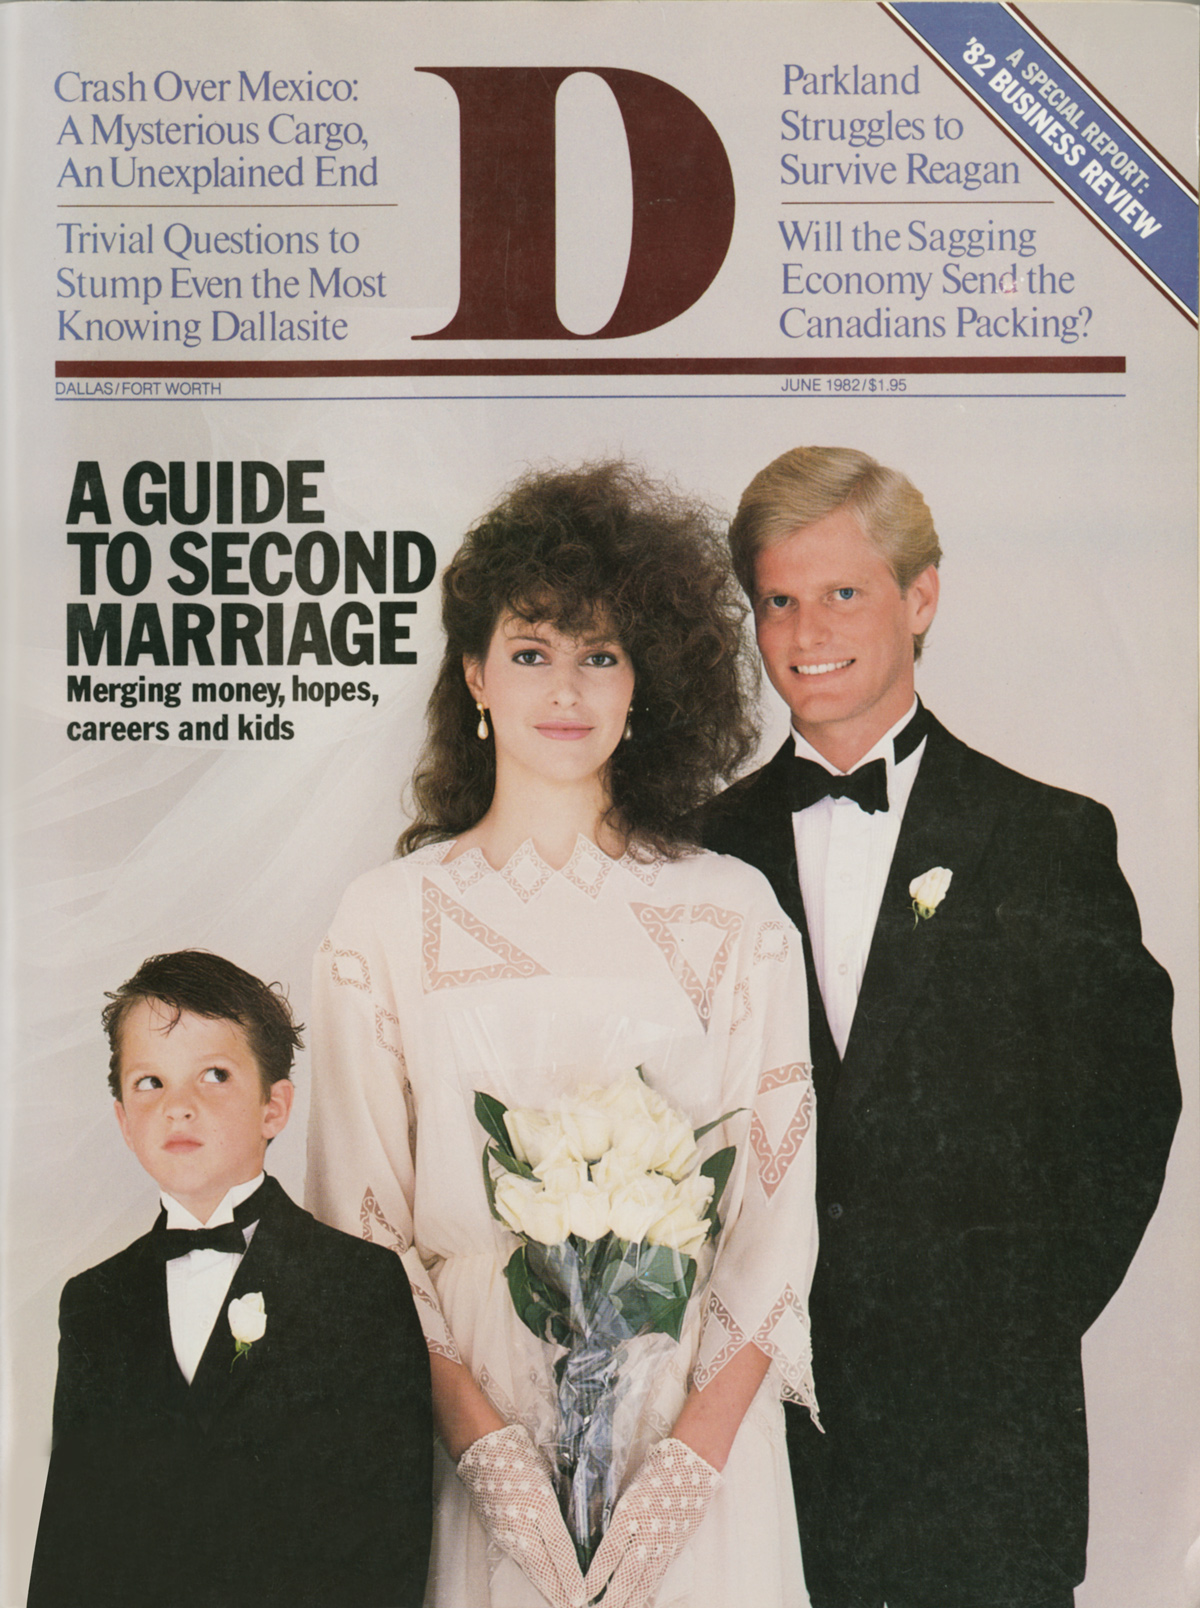 June 1982 cover